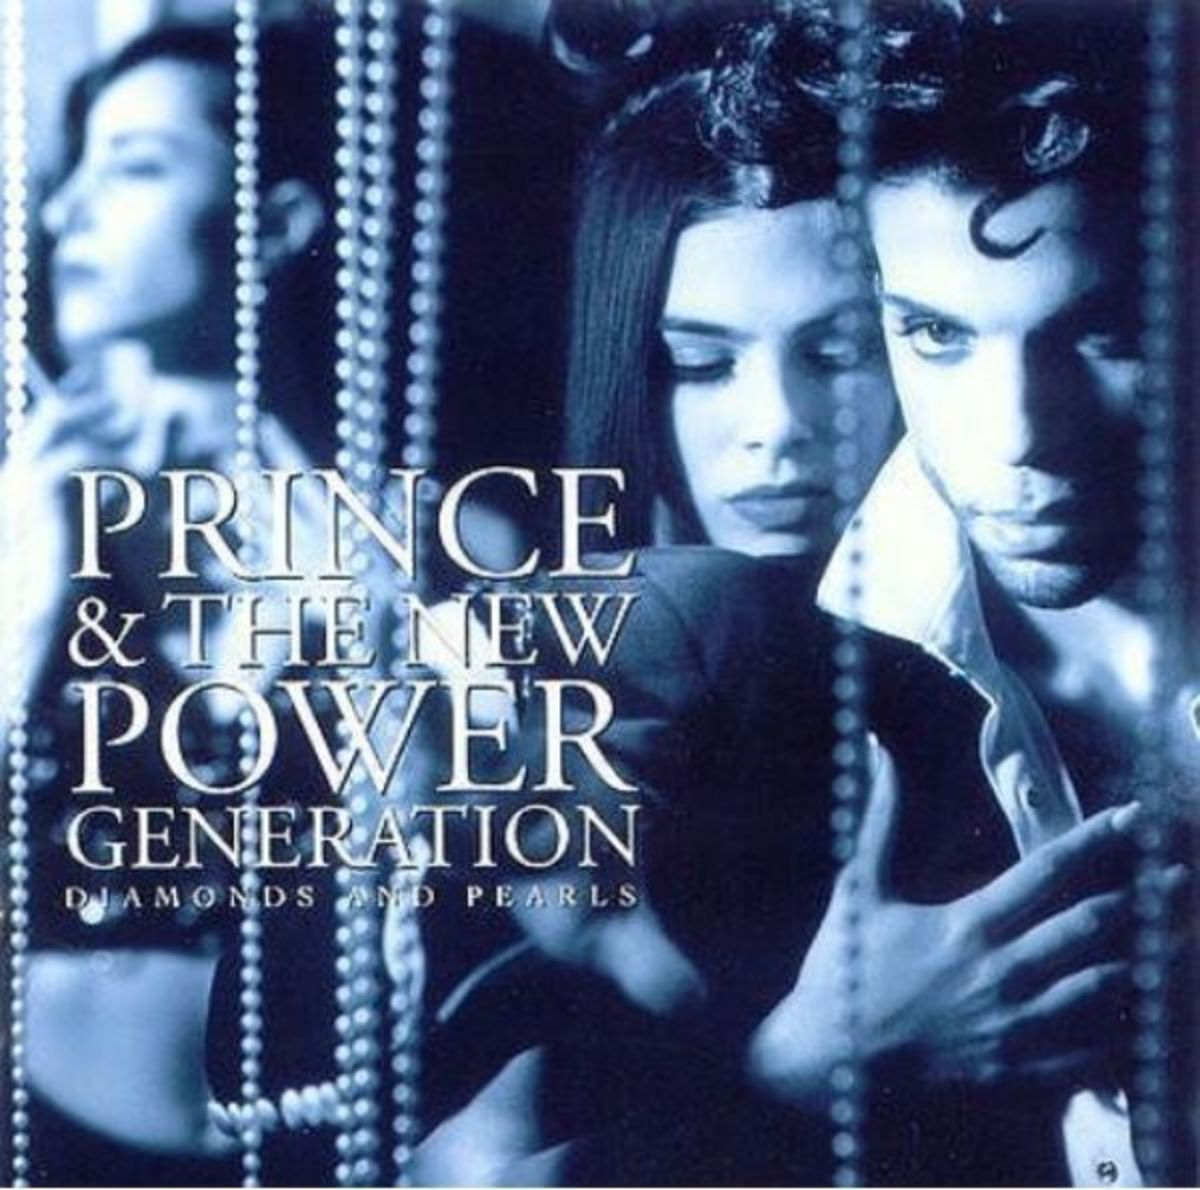 Prince's Diamonds & Pearls